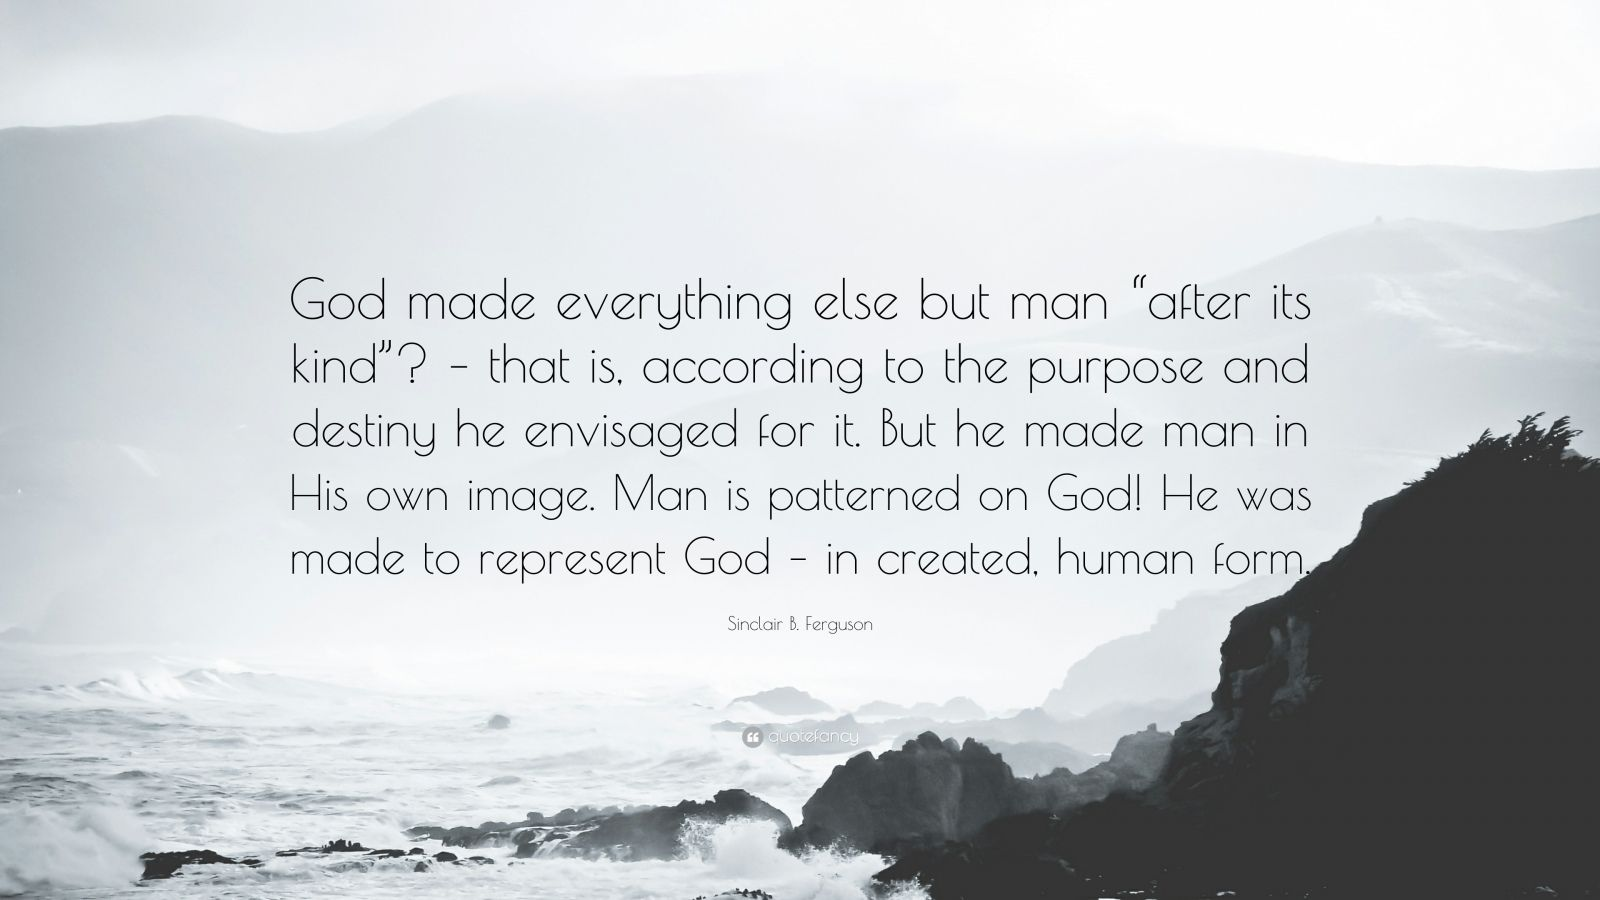 """Sinclair B. Ferguson Quote: """"God made everything else but man """"after its kind""""? – that is, according to the purpose and destiny he envisaged for it. But he made man in His own image. Man is patterned on God! He was made to represent God – in created, human form."""""""